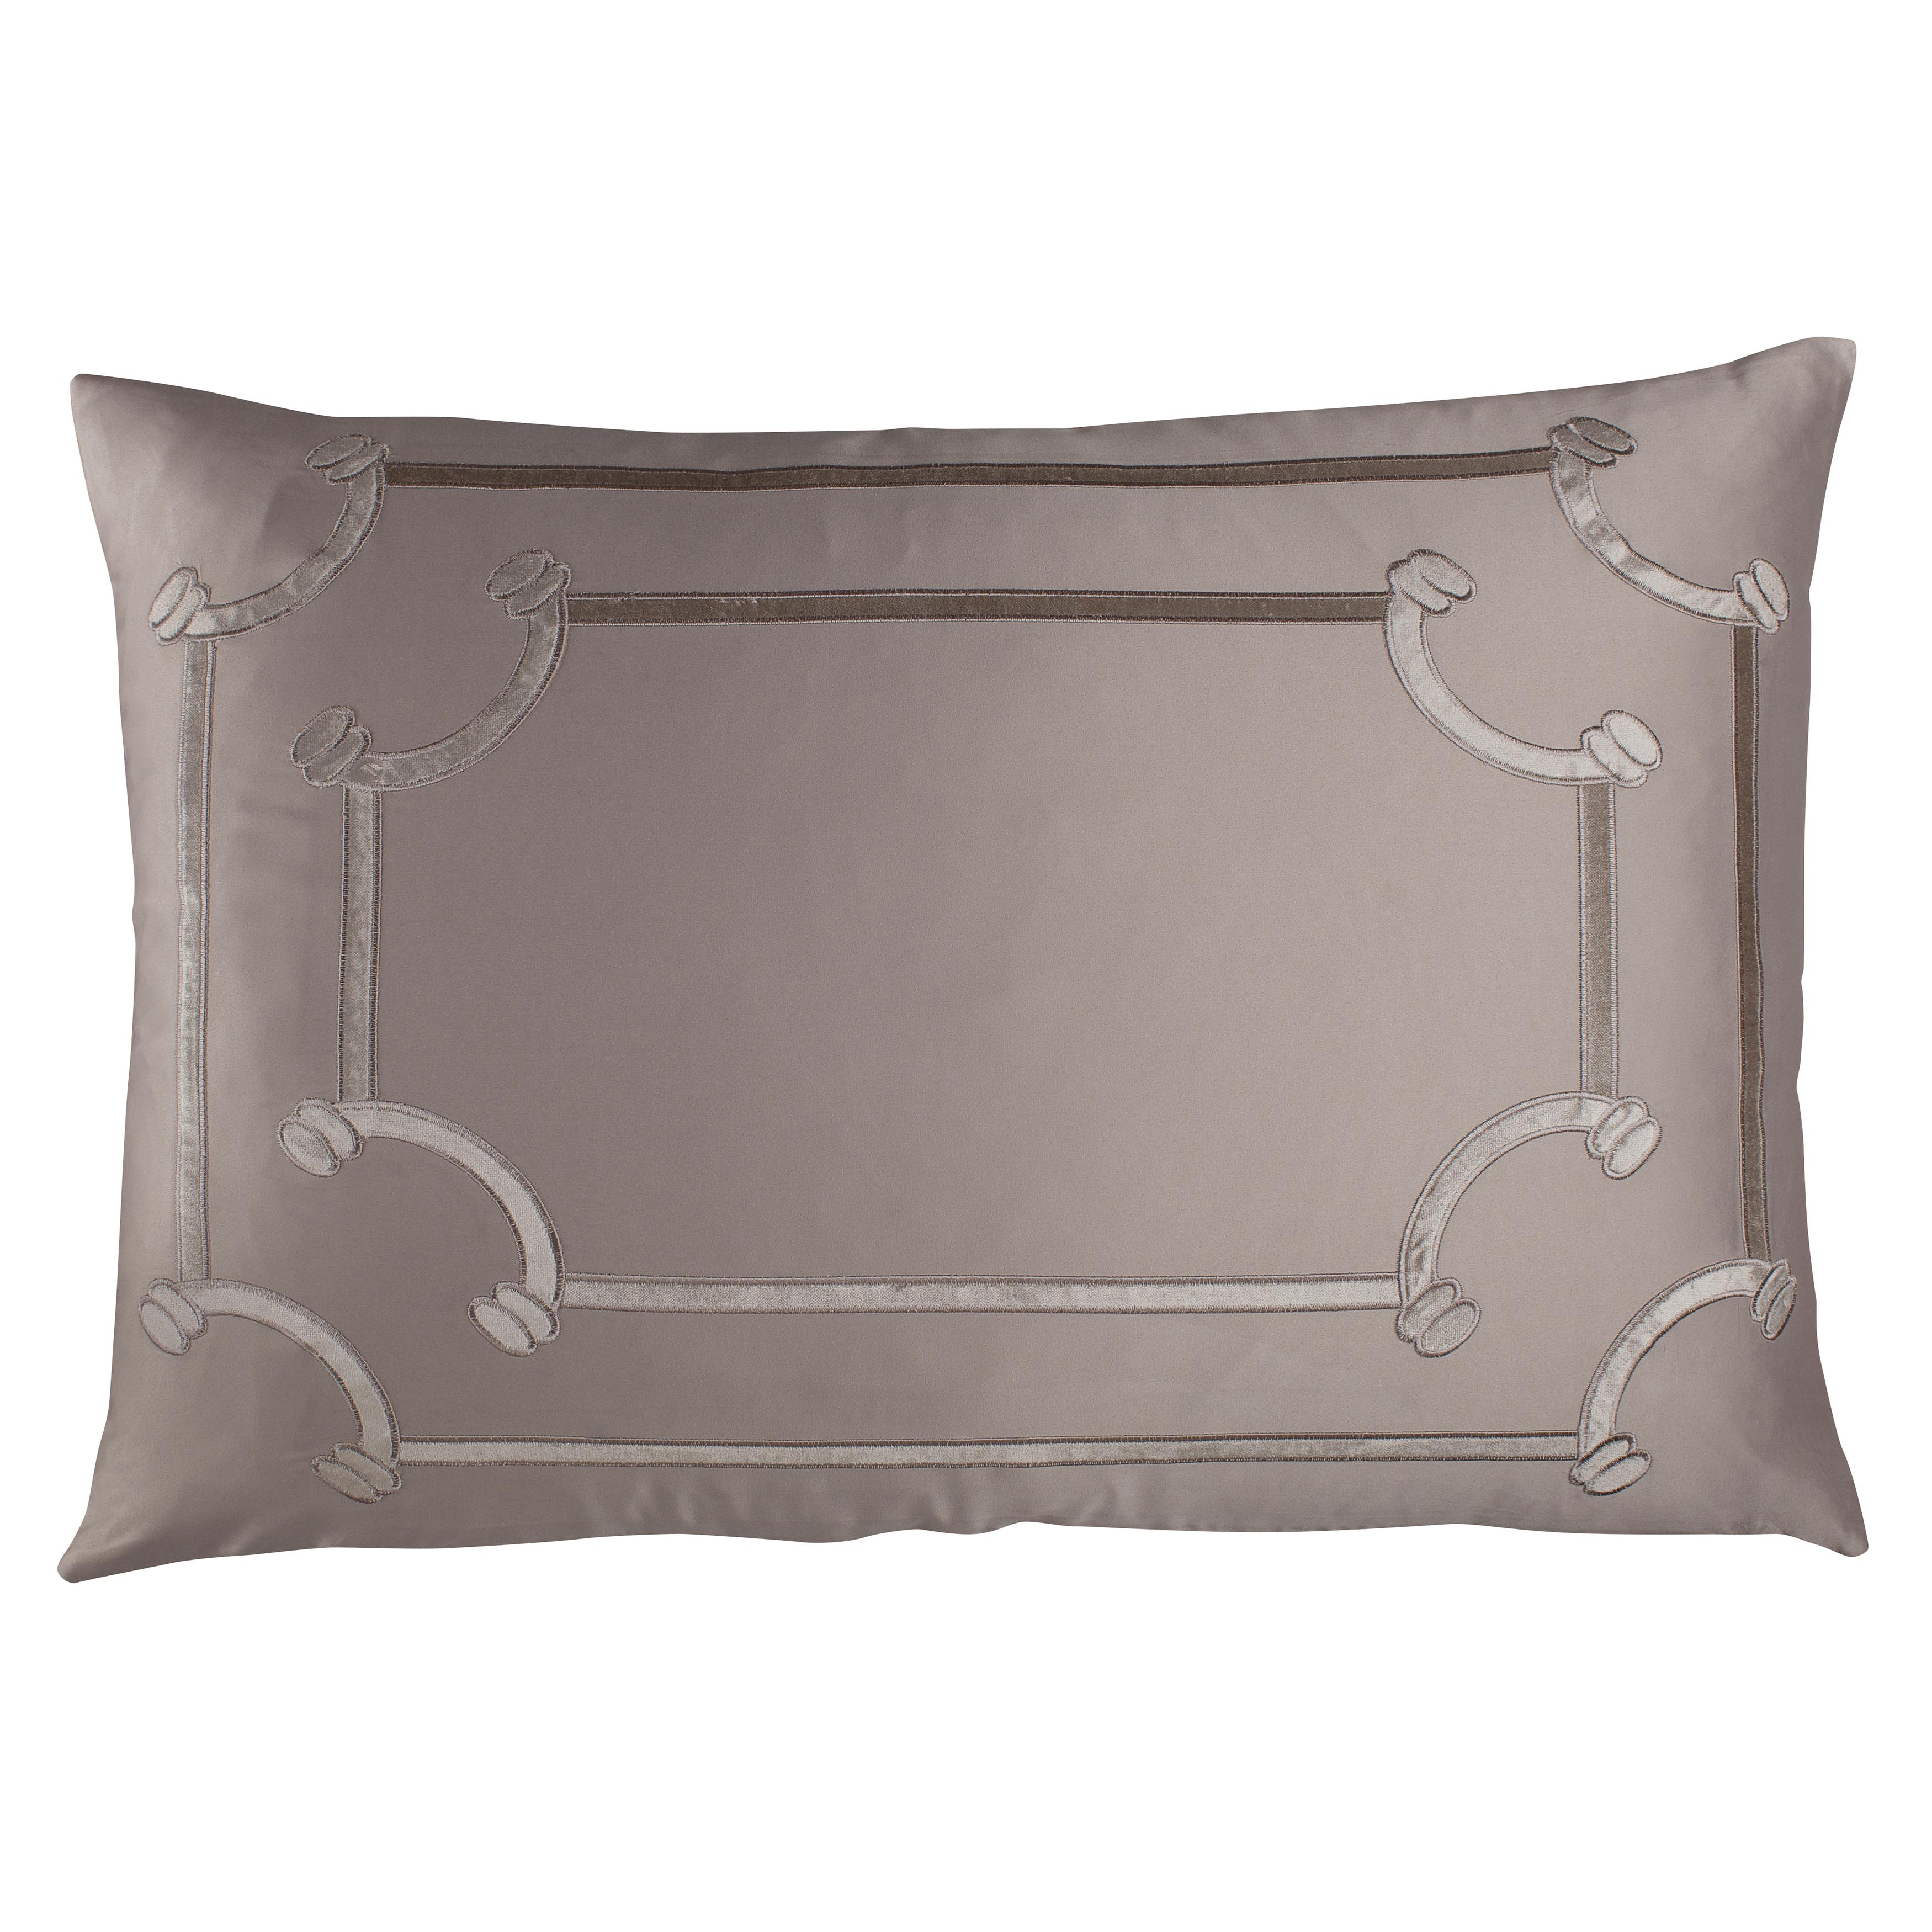 Vendome Taupe S&S Fawn Velvet Throw Pillow Throw Pillows By Lili Alessandra